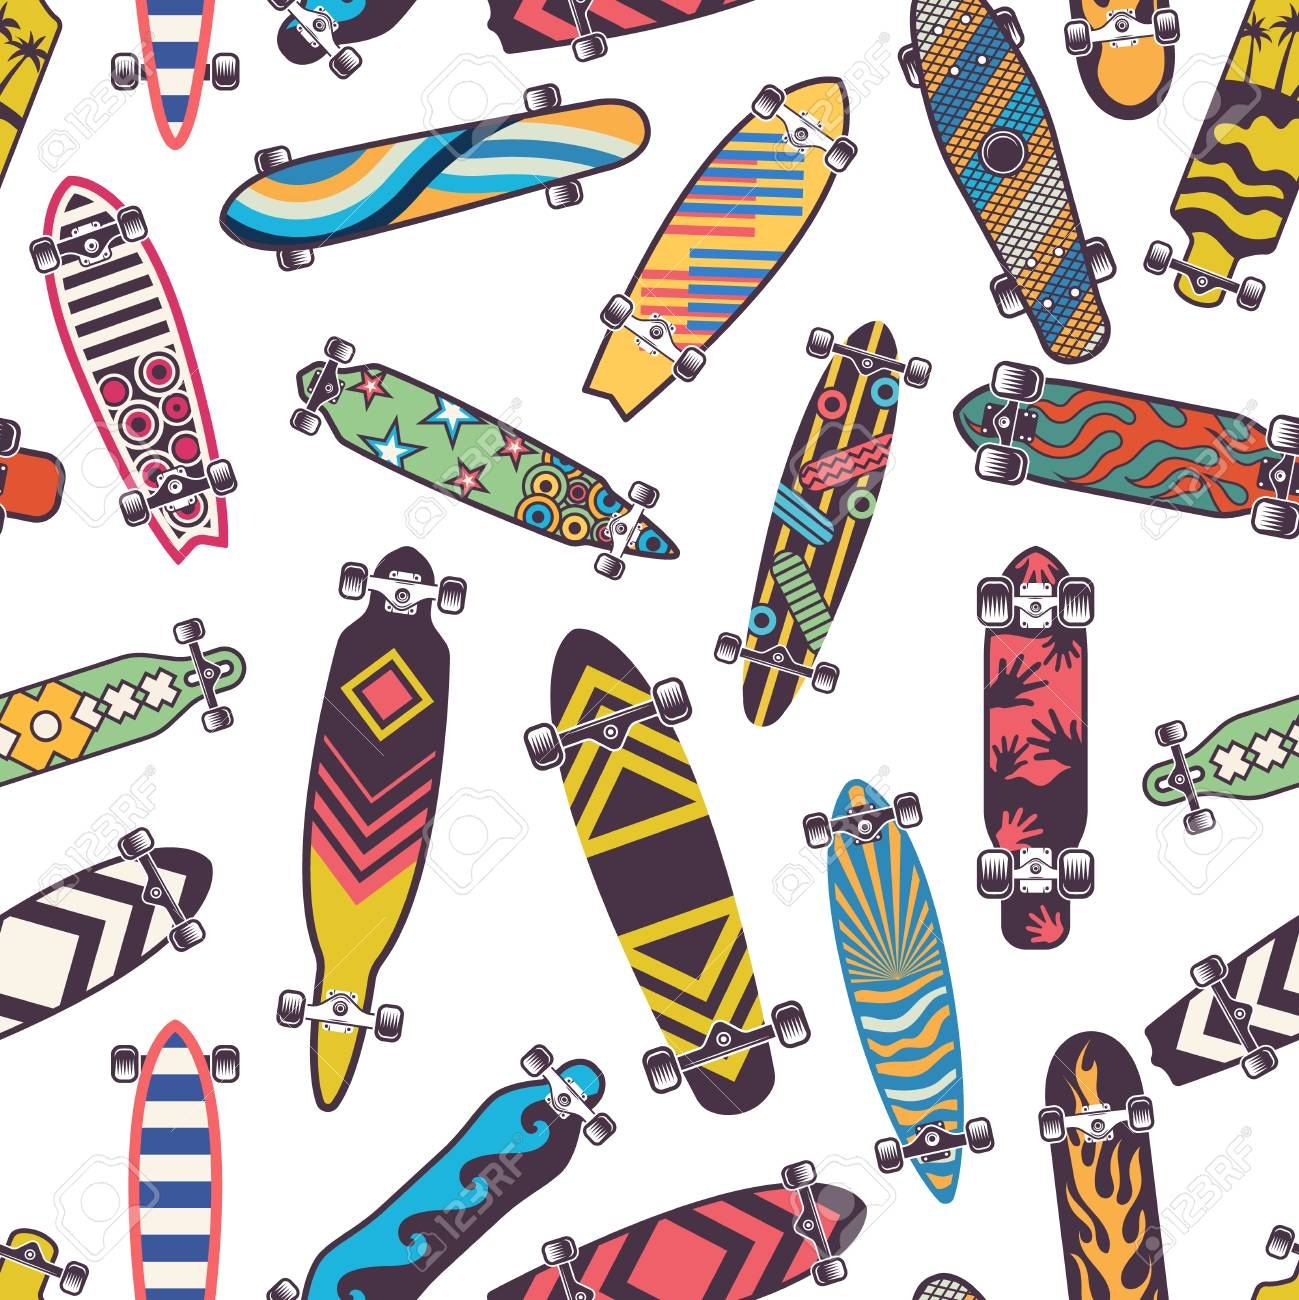 Colored seamless pattern with various skateboards. - 101059229